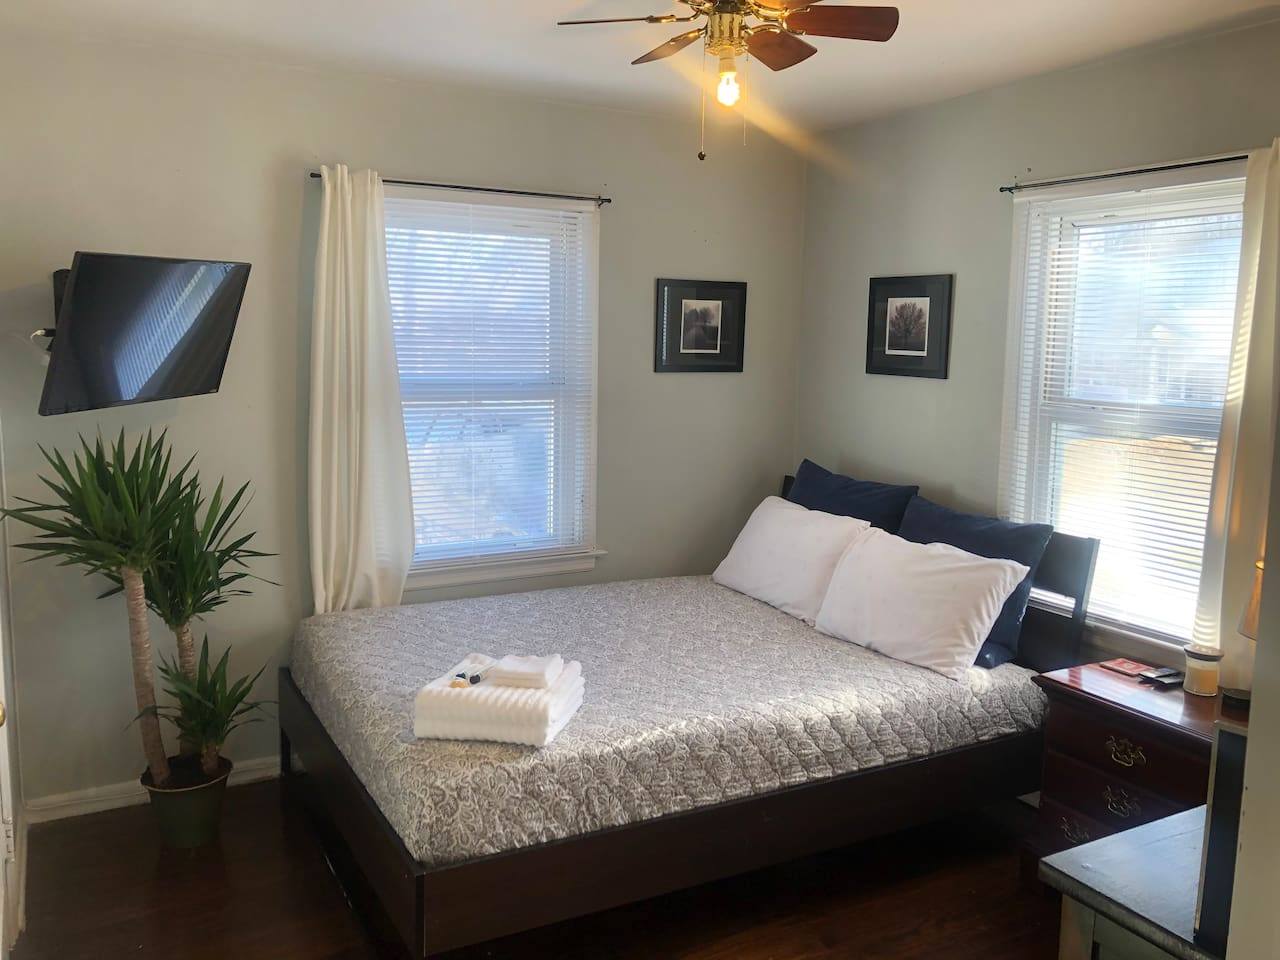 Very comfortable and cozy bed! Keeps you cool in summer, warm in winter...relax after a long day in a quite safe neighborhood away from downtown drama. Modern queen bed perfect for 2. Enjoy asking Alexa what music to play or catch up on TV shows